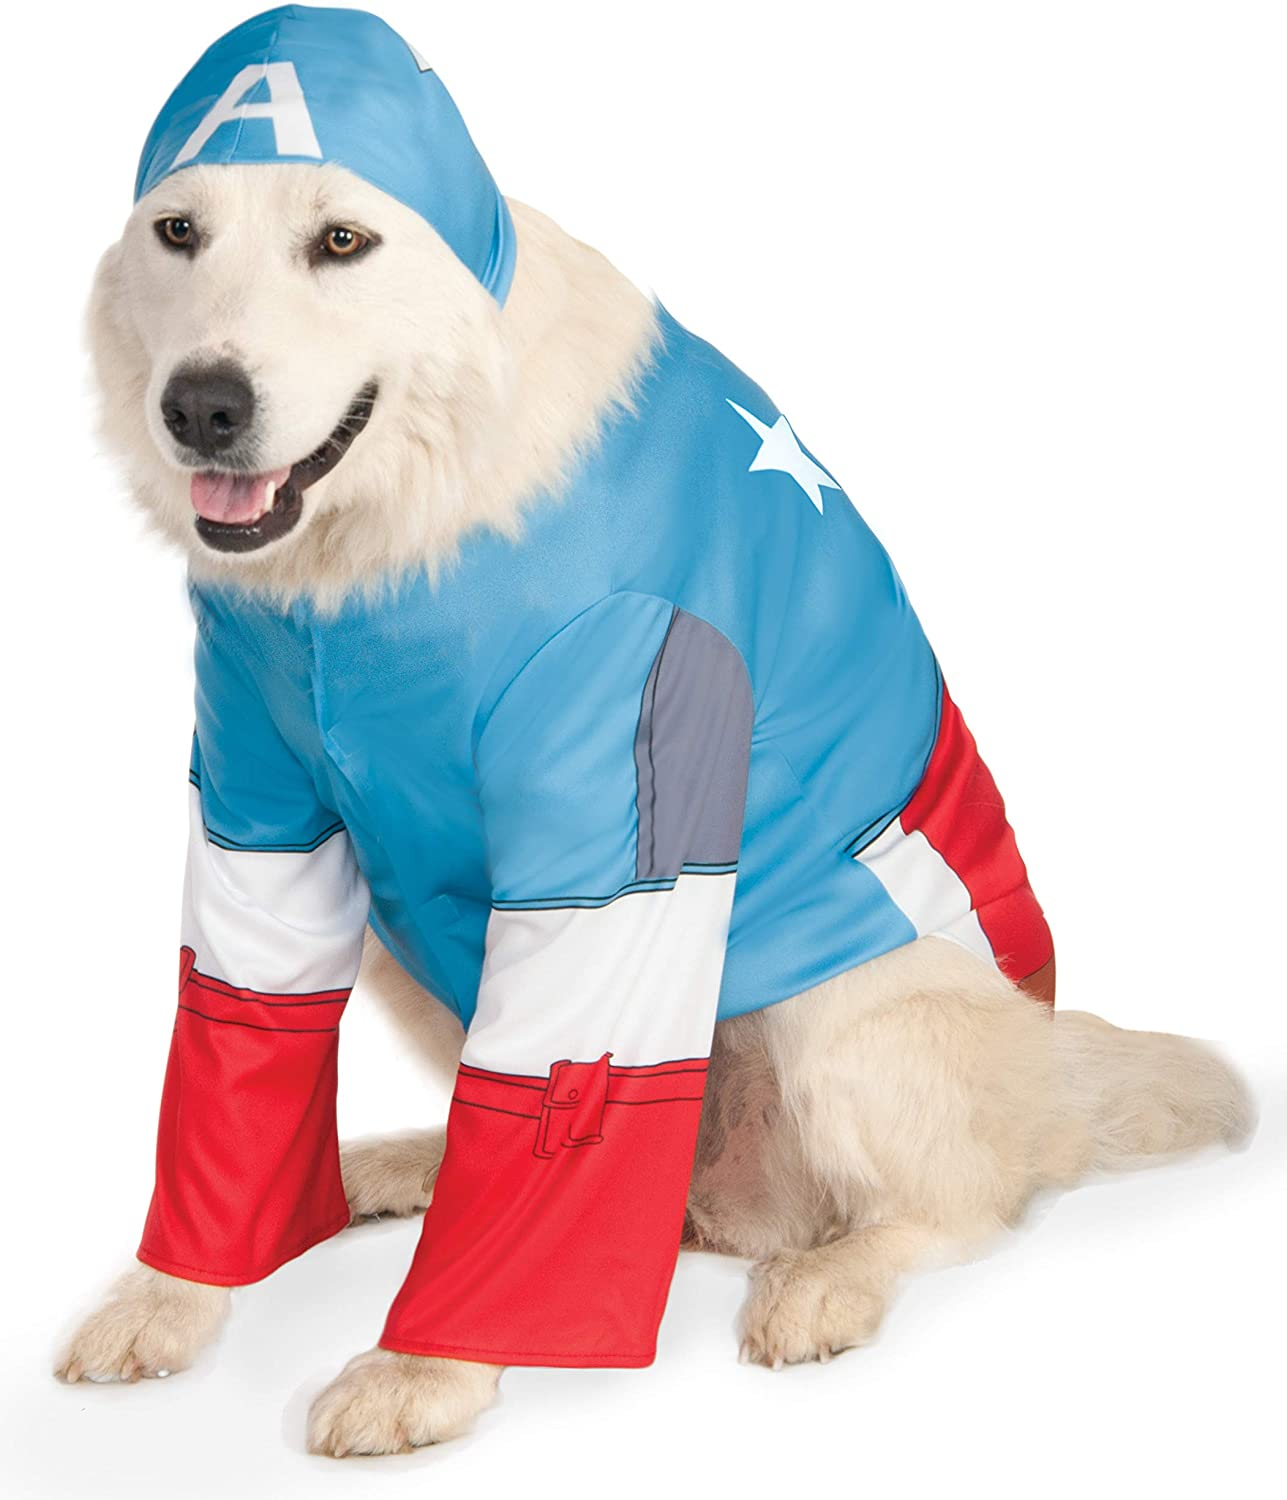 Amazon Com Rubie S Marvel Universe Captain America Pet Costume Small Pet Supplies From the classic comics to the latest movies, we have different types of captain marvel costumes for you. marvel universe captain america pet costume